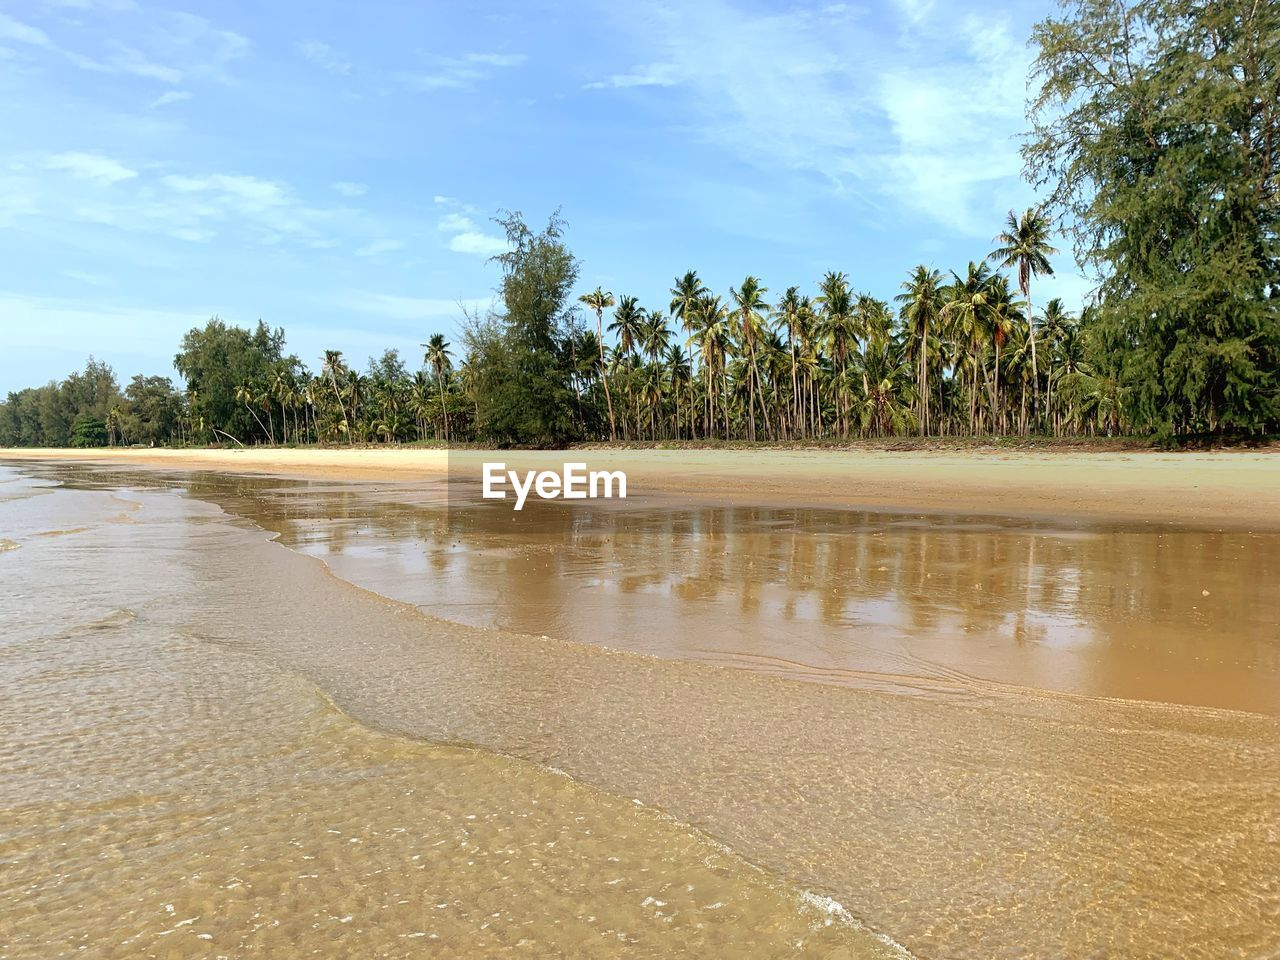 tree, sky, plant, water, tranquility, beauty in nature, tranquil scene, cloud - sky, scenics - nature, land, nature, sand, day, growth, no people, beach, non-urban scene, sunlight, idyllic, outdoors, shallow